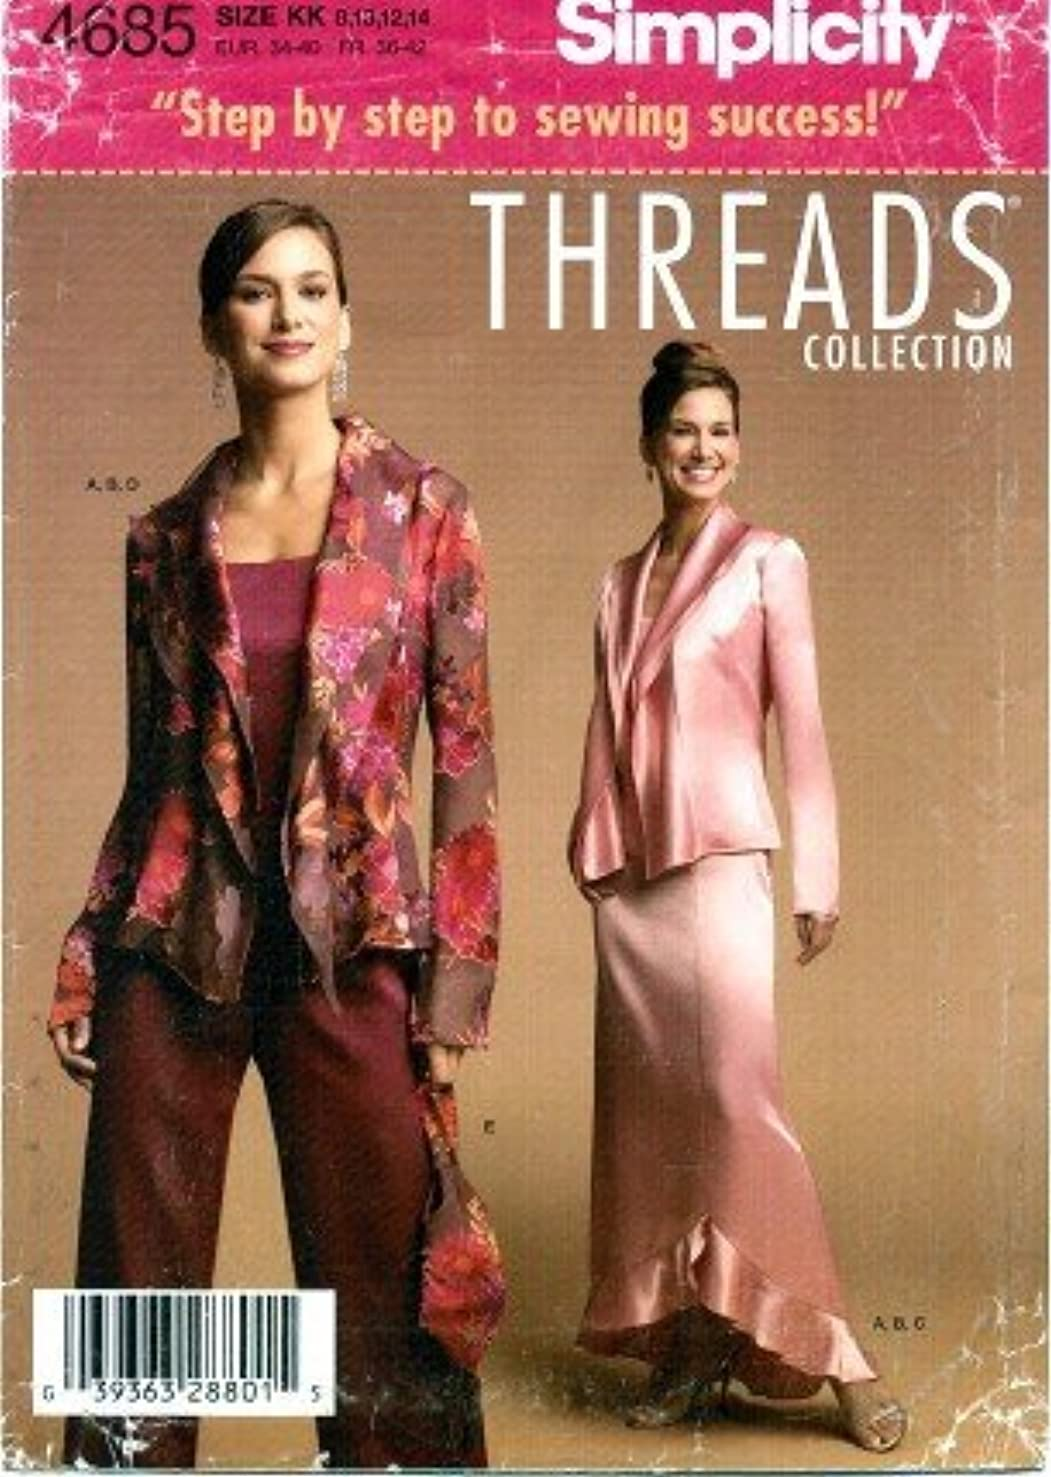 Simplicity 4685 Sewing Pattern Threads Collection Misses Camisole Jacket Skirt Pants Purse Size 8 - 14